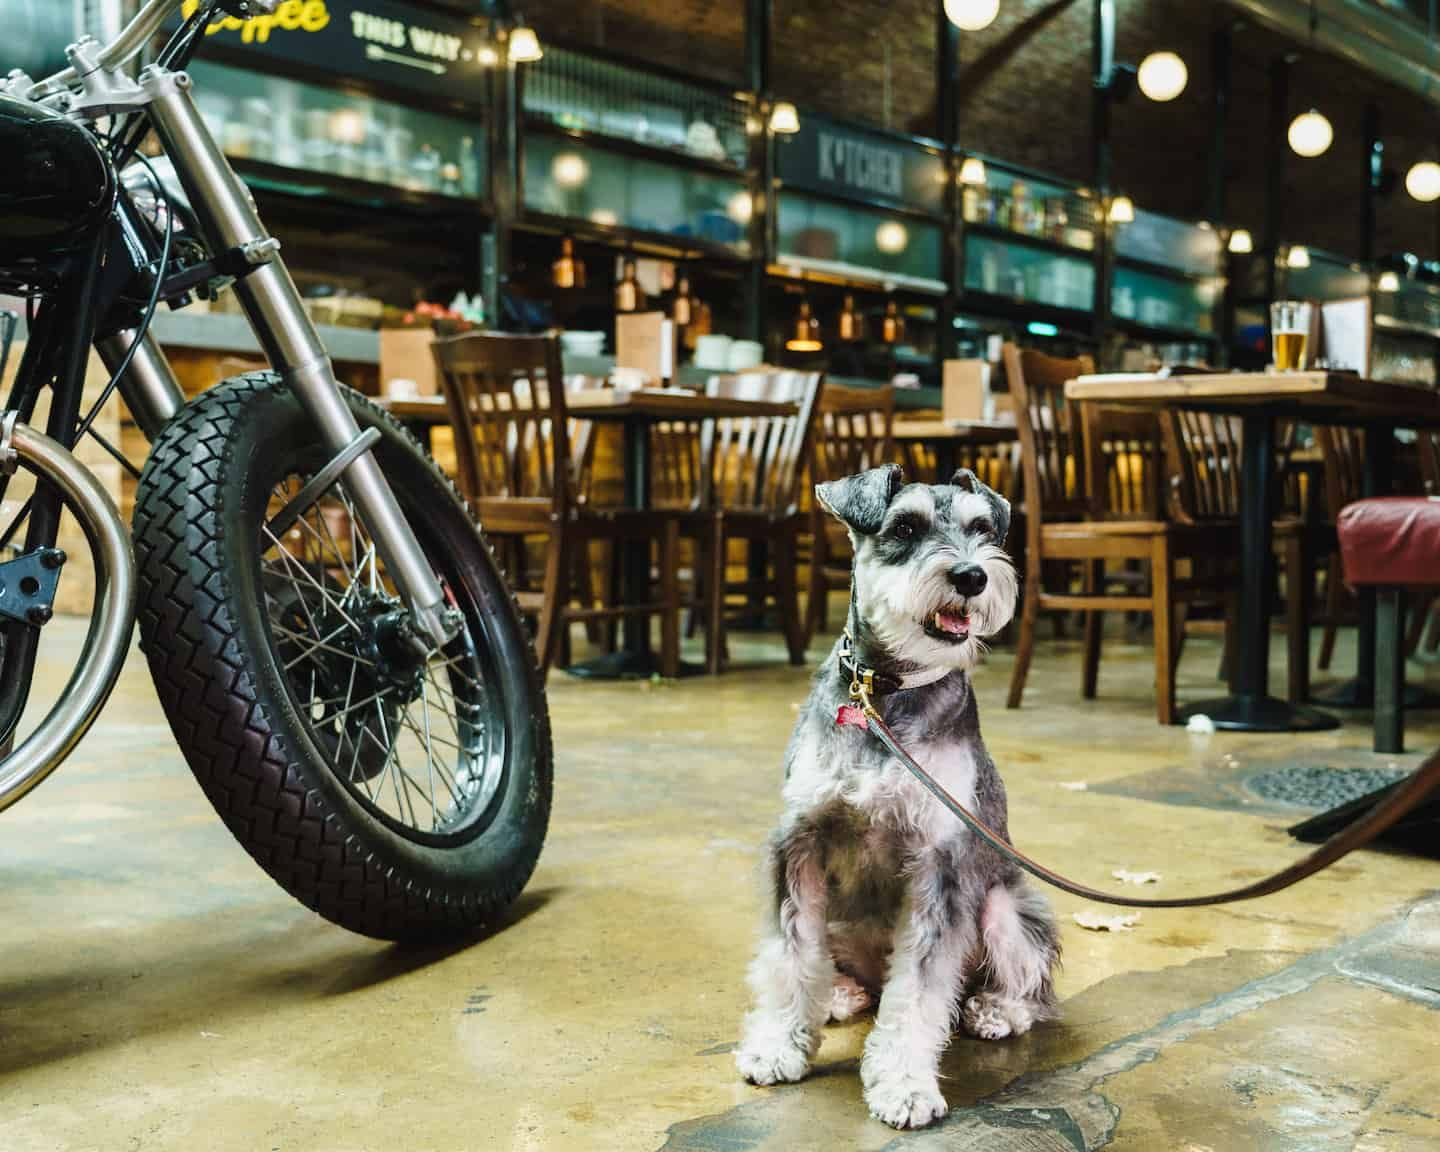 My Dog Friendly London By Rusty Red The Schnauzer Dog Friendly Shoreditch And Hoxton Bike Shed Dog Friends Schnauzer Dogs Dogs